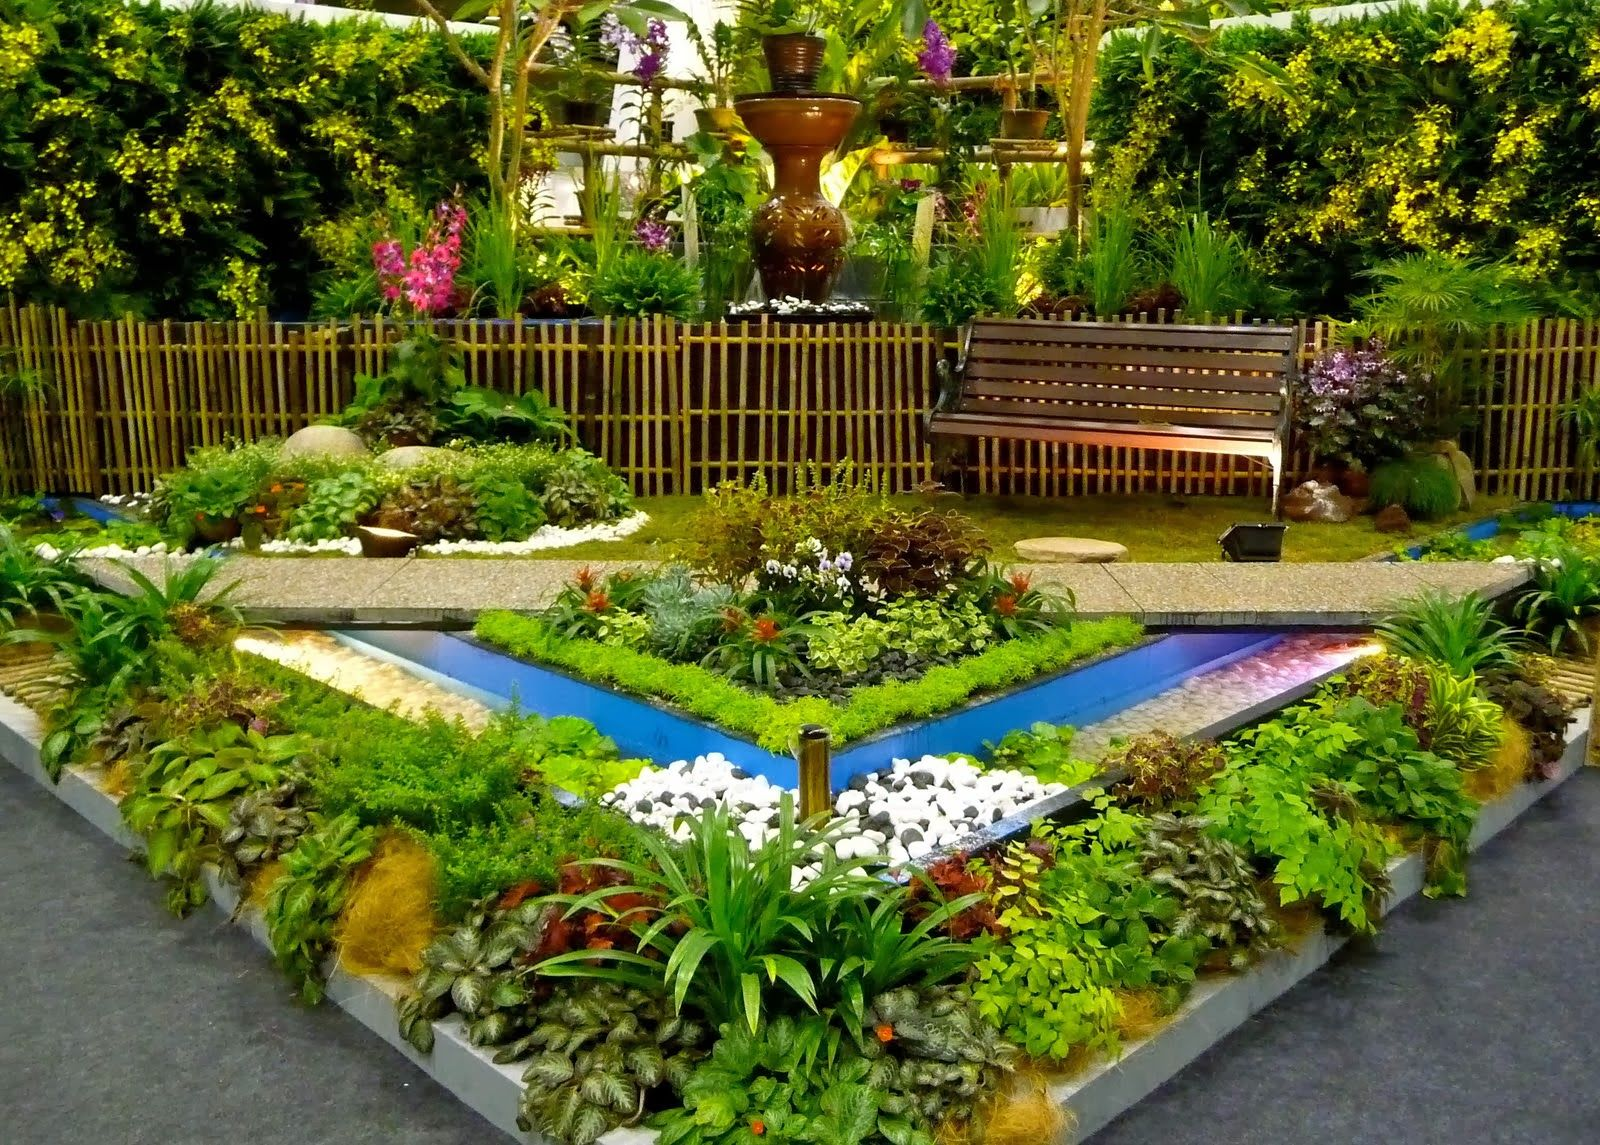 images about Garden Landscaping on Pinterest Gardens